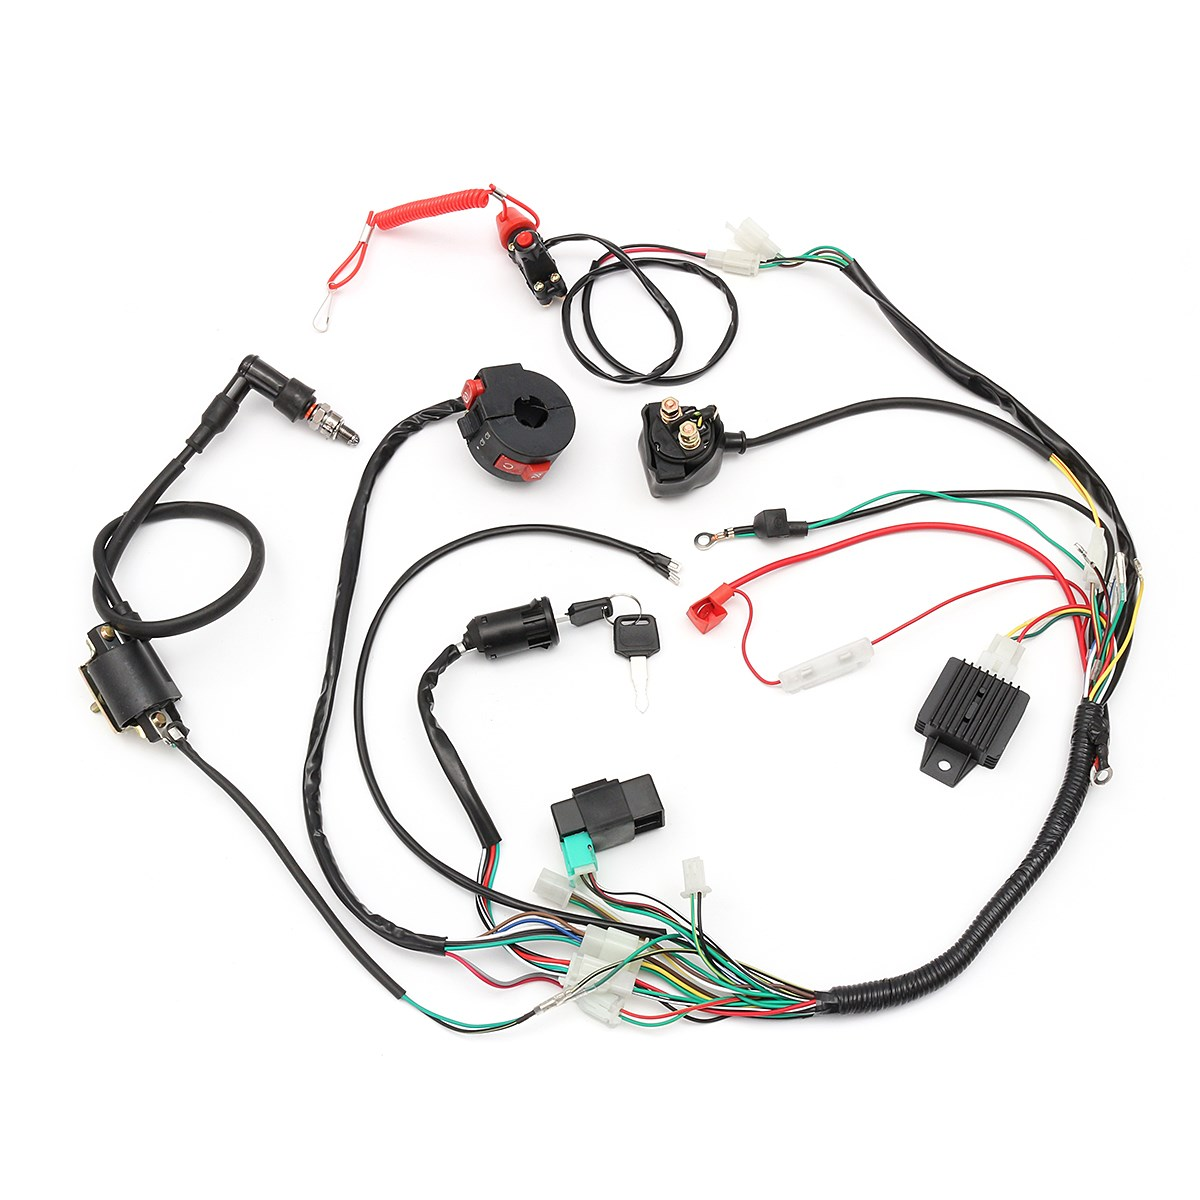 Cdi Engine Start Harness Set Wiring Loom Solenoid Coil Dune Buggy Turn Signal Rectifier For 50 70 90 110 125cc Quad Dirt Bike Atv Go Kart In Motorbike Ingition From